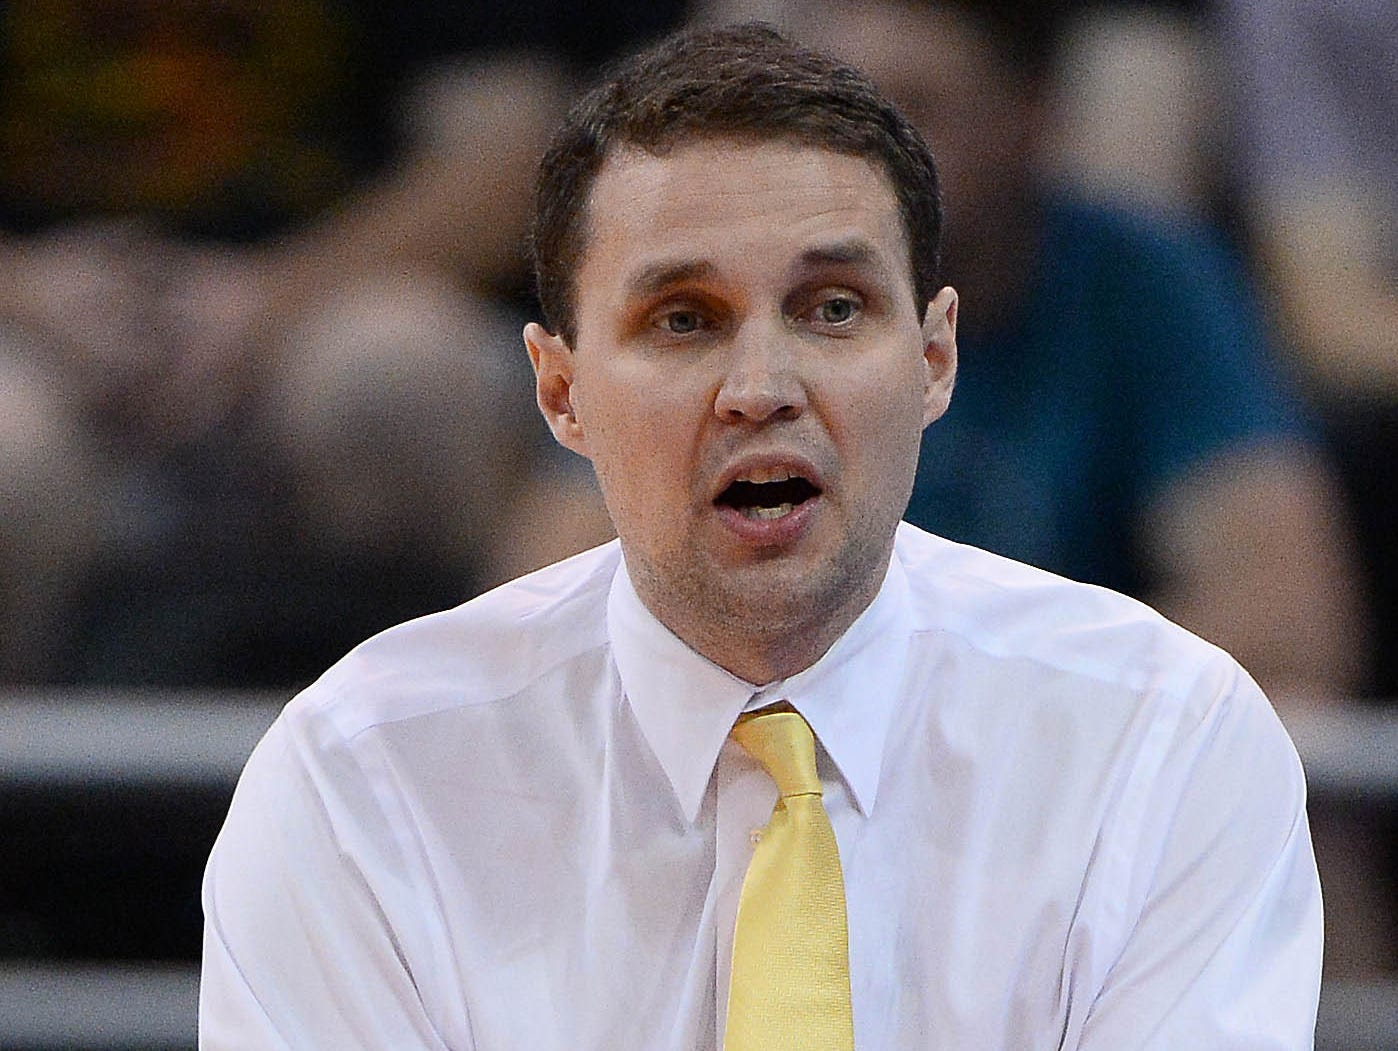 Virginia Commonwealth head coach Will Wade will be the new coach of the LSU Tigers.